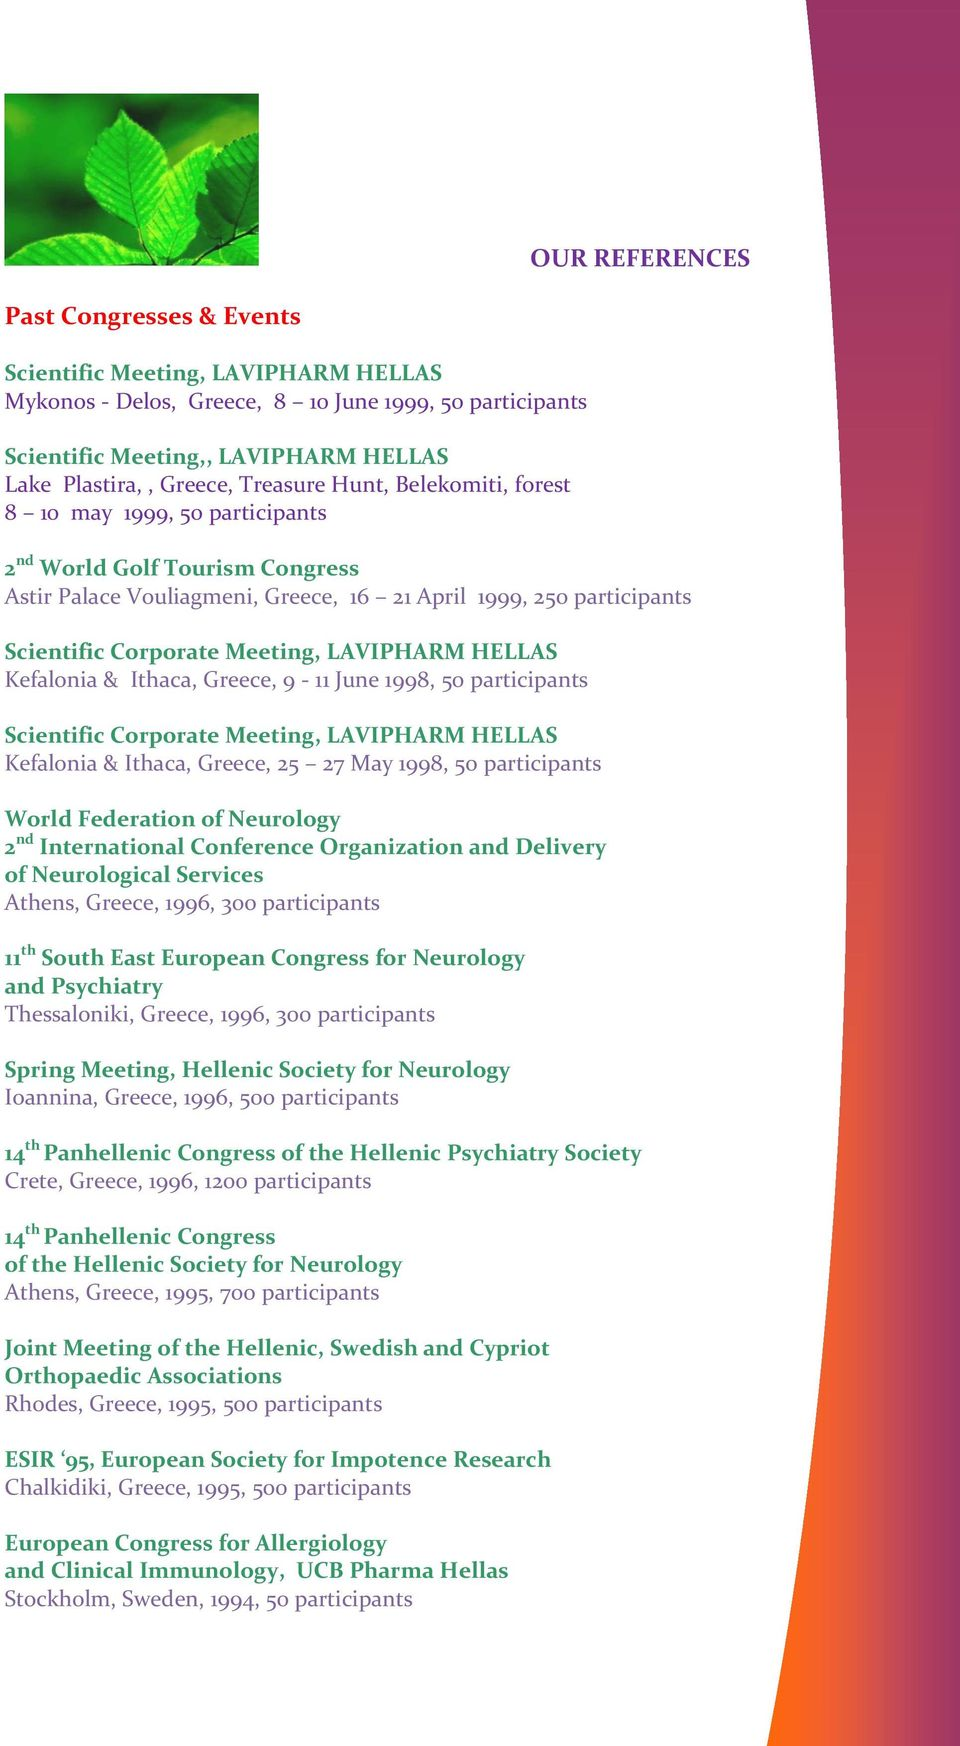 9-11 June 1998, 50 participants Scientific Corporate Meeting, LAVIPHARM HELLAS Kefalonia & Ιthaca, Greece, 25 27 Μay 1998, 50 participants World Federation of Neurology 2 nd International Conference